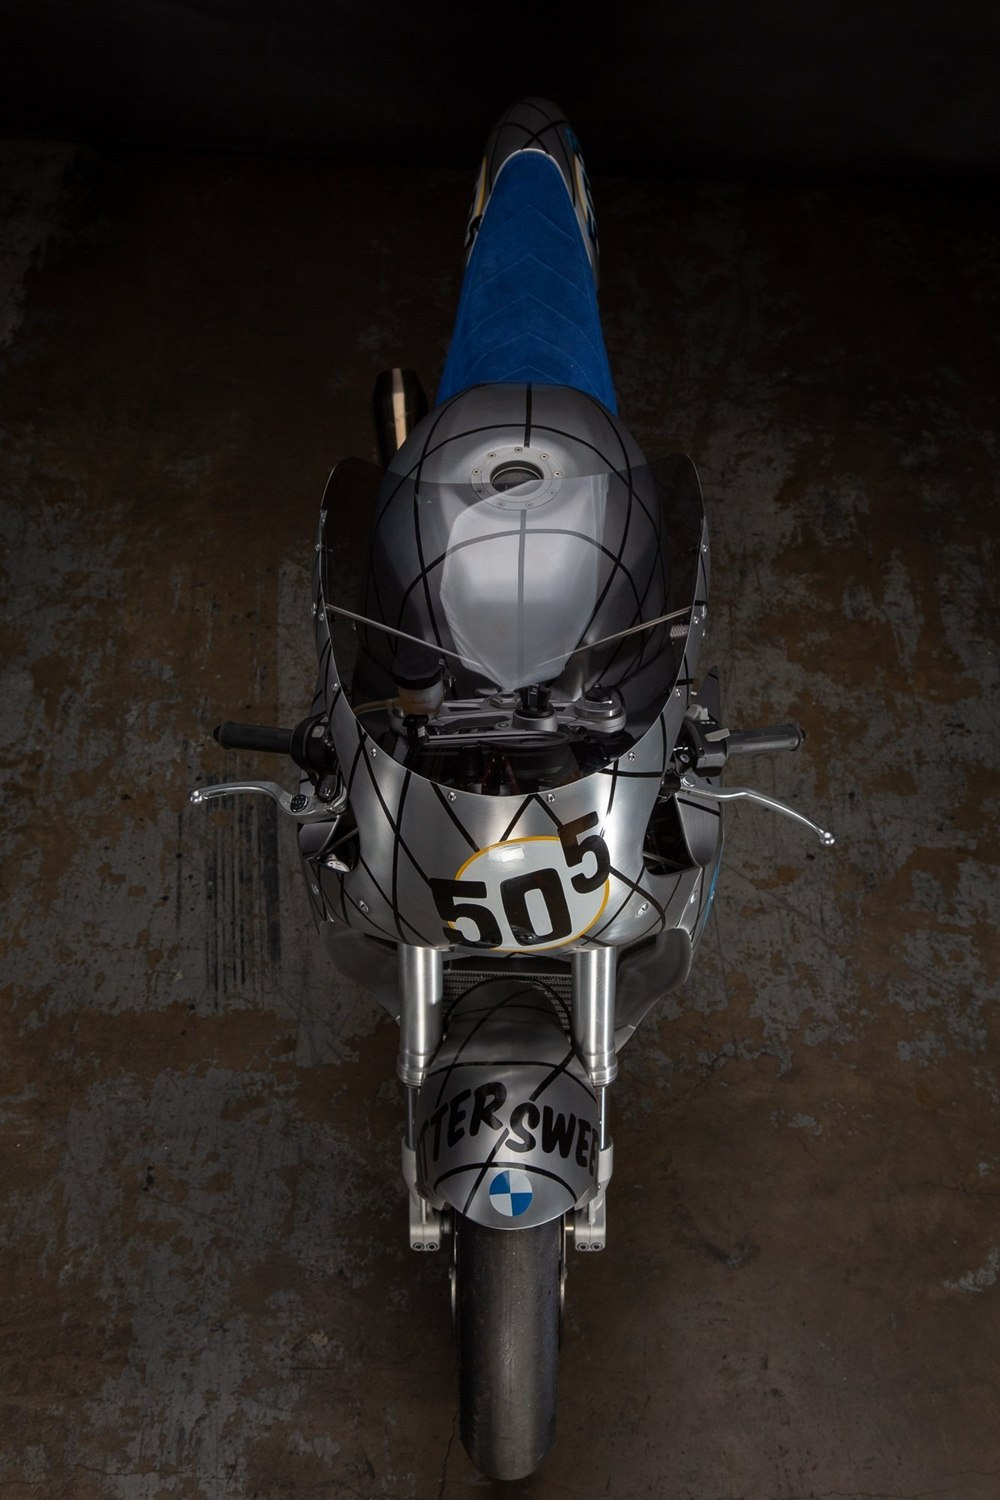 Revival Cycles: кастом BMW S1000RR